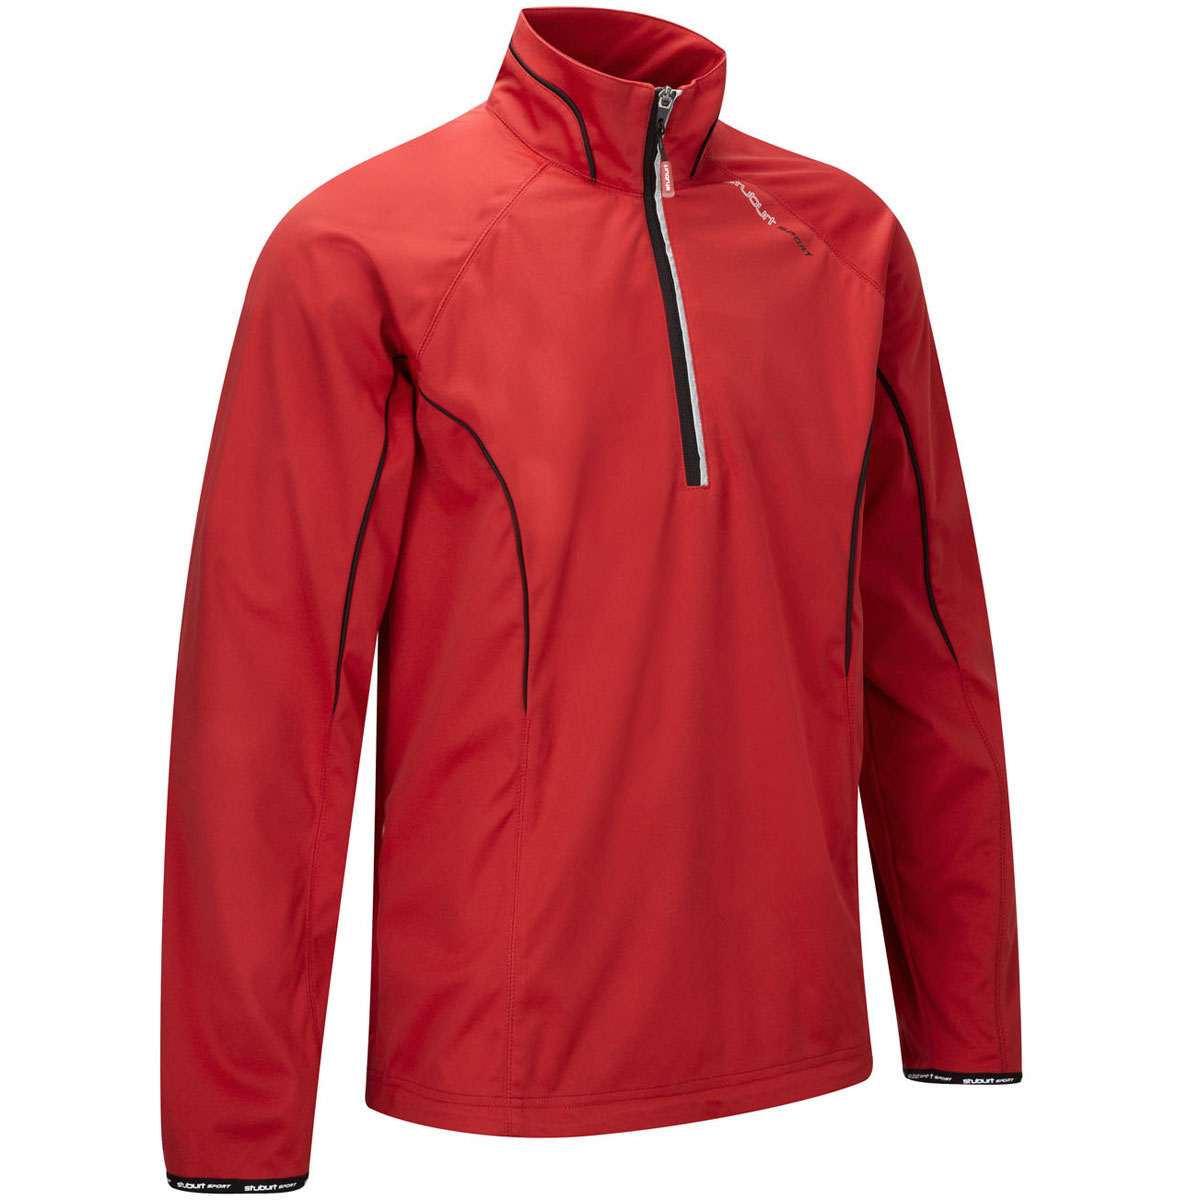 Stuburt-2014-Mens-Sport-1-2-Zip-LS-Water-Repellent-Golf-Windshirt-Jacket-Top